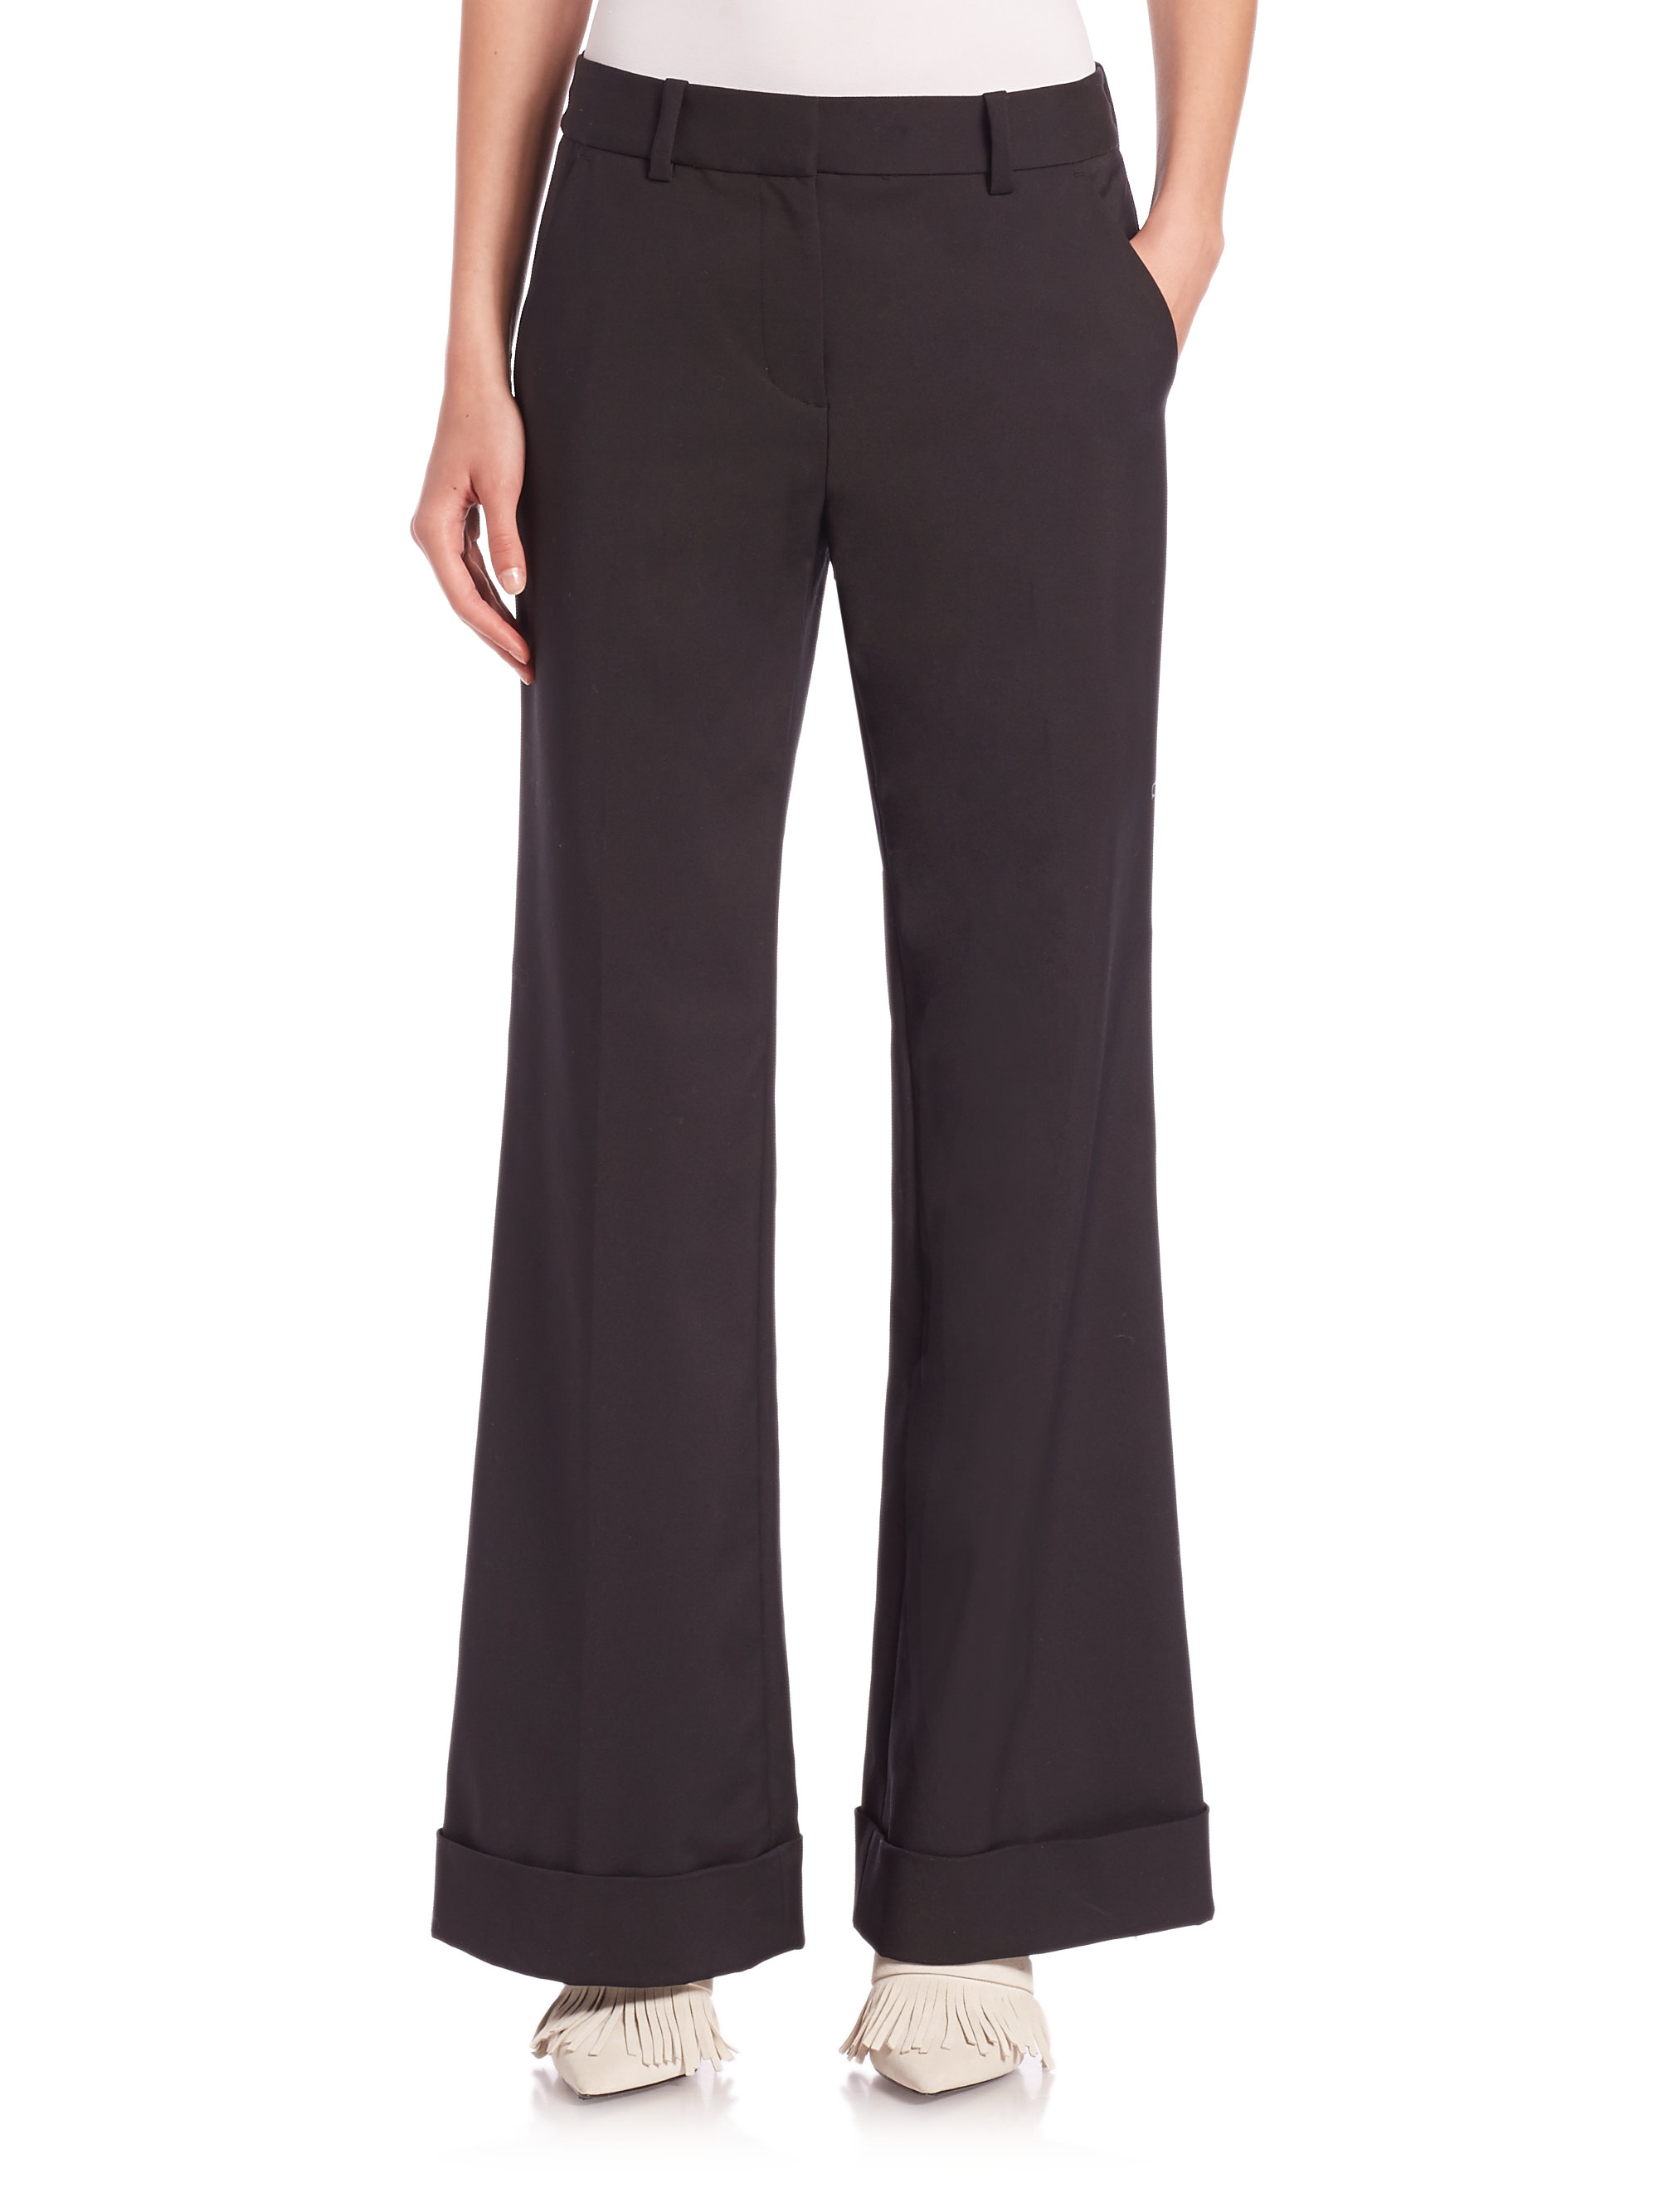 Cuffed Wide-Leg Pants, Black. Gallery. Wide-Leg Cuffed Pants. Quick Look. Robert Rodriguez · Cotton-Linen Wide-Leg Pants. Classic Cuffed Wide-Leg Pants.